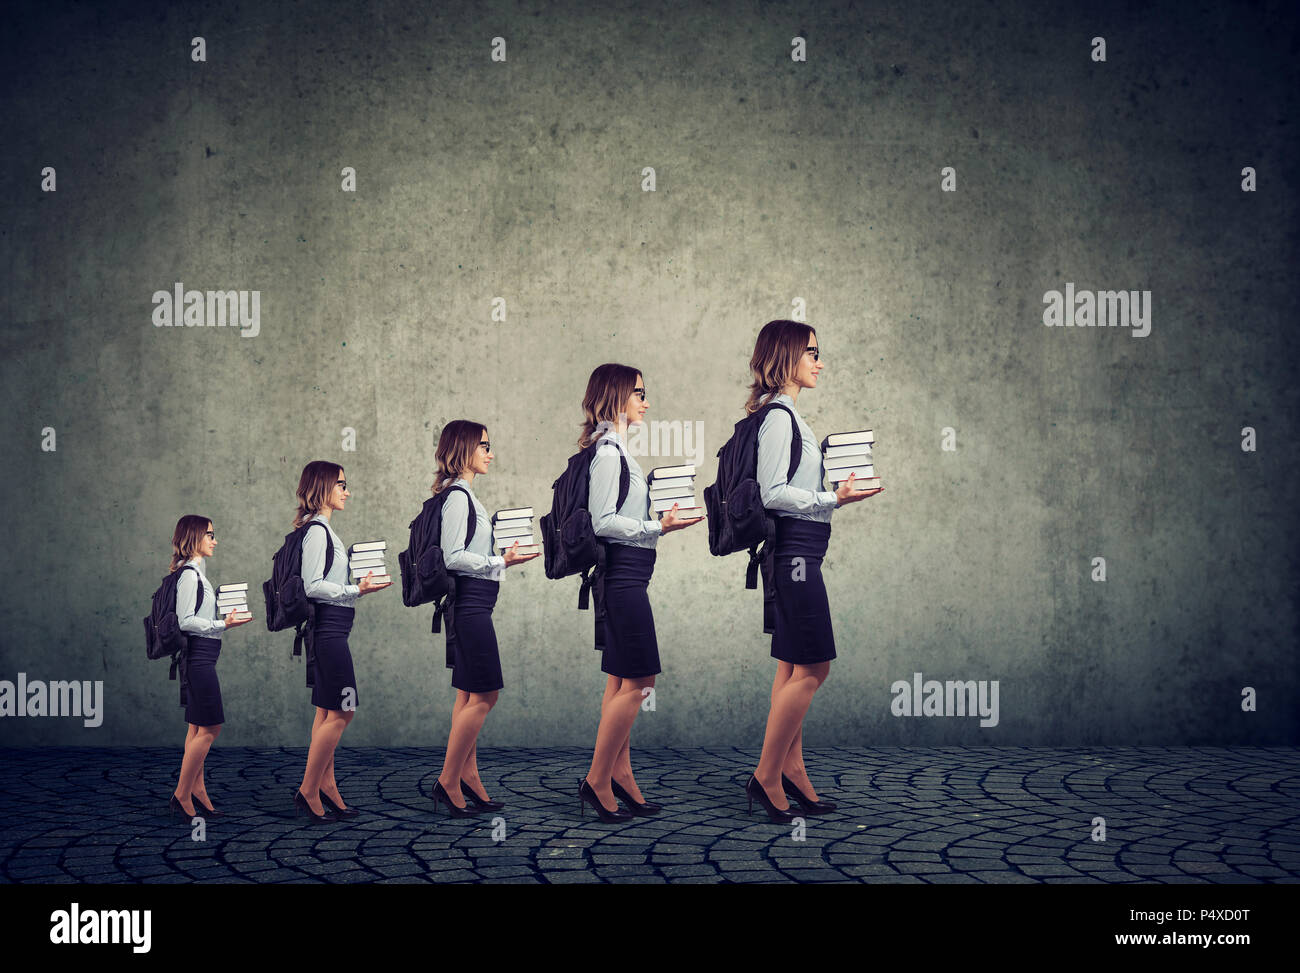 Successful educated woman. Progress in career and professional education growth concept - Stock Image